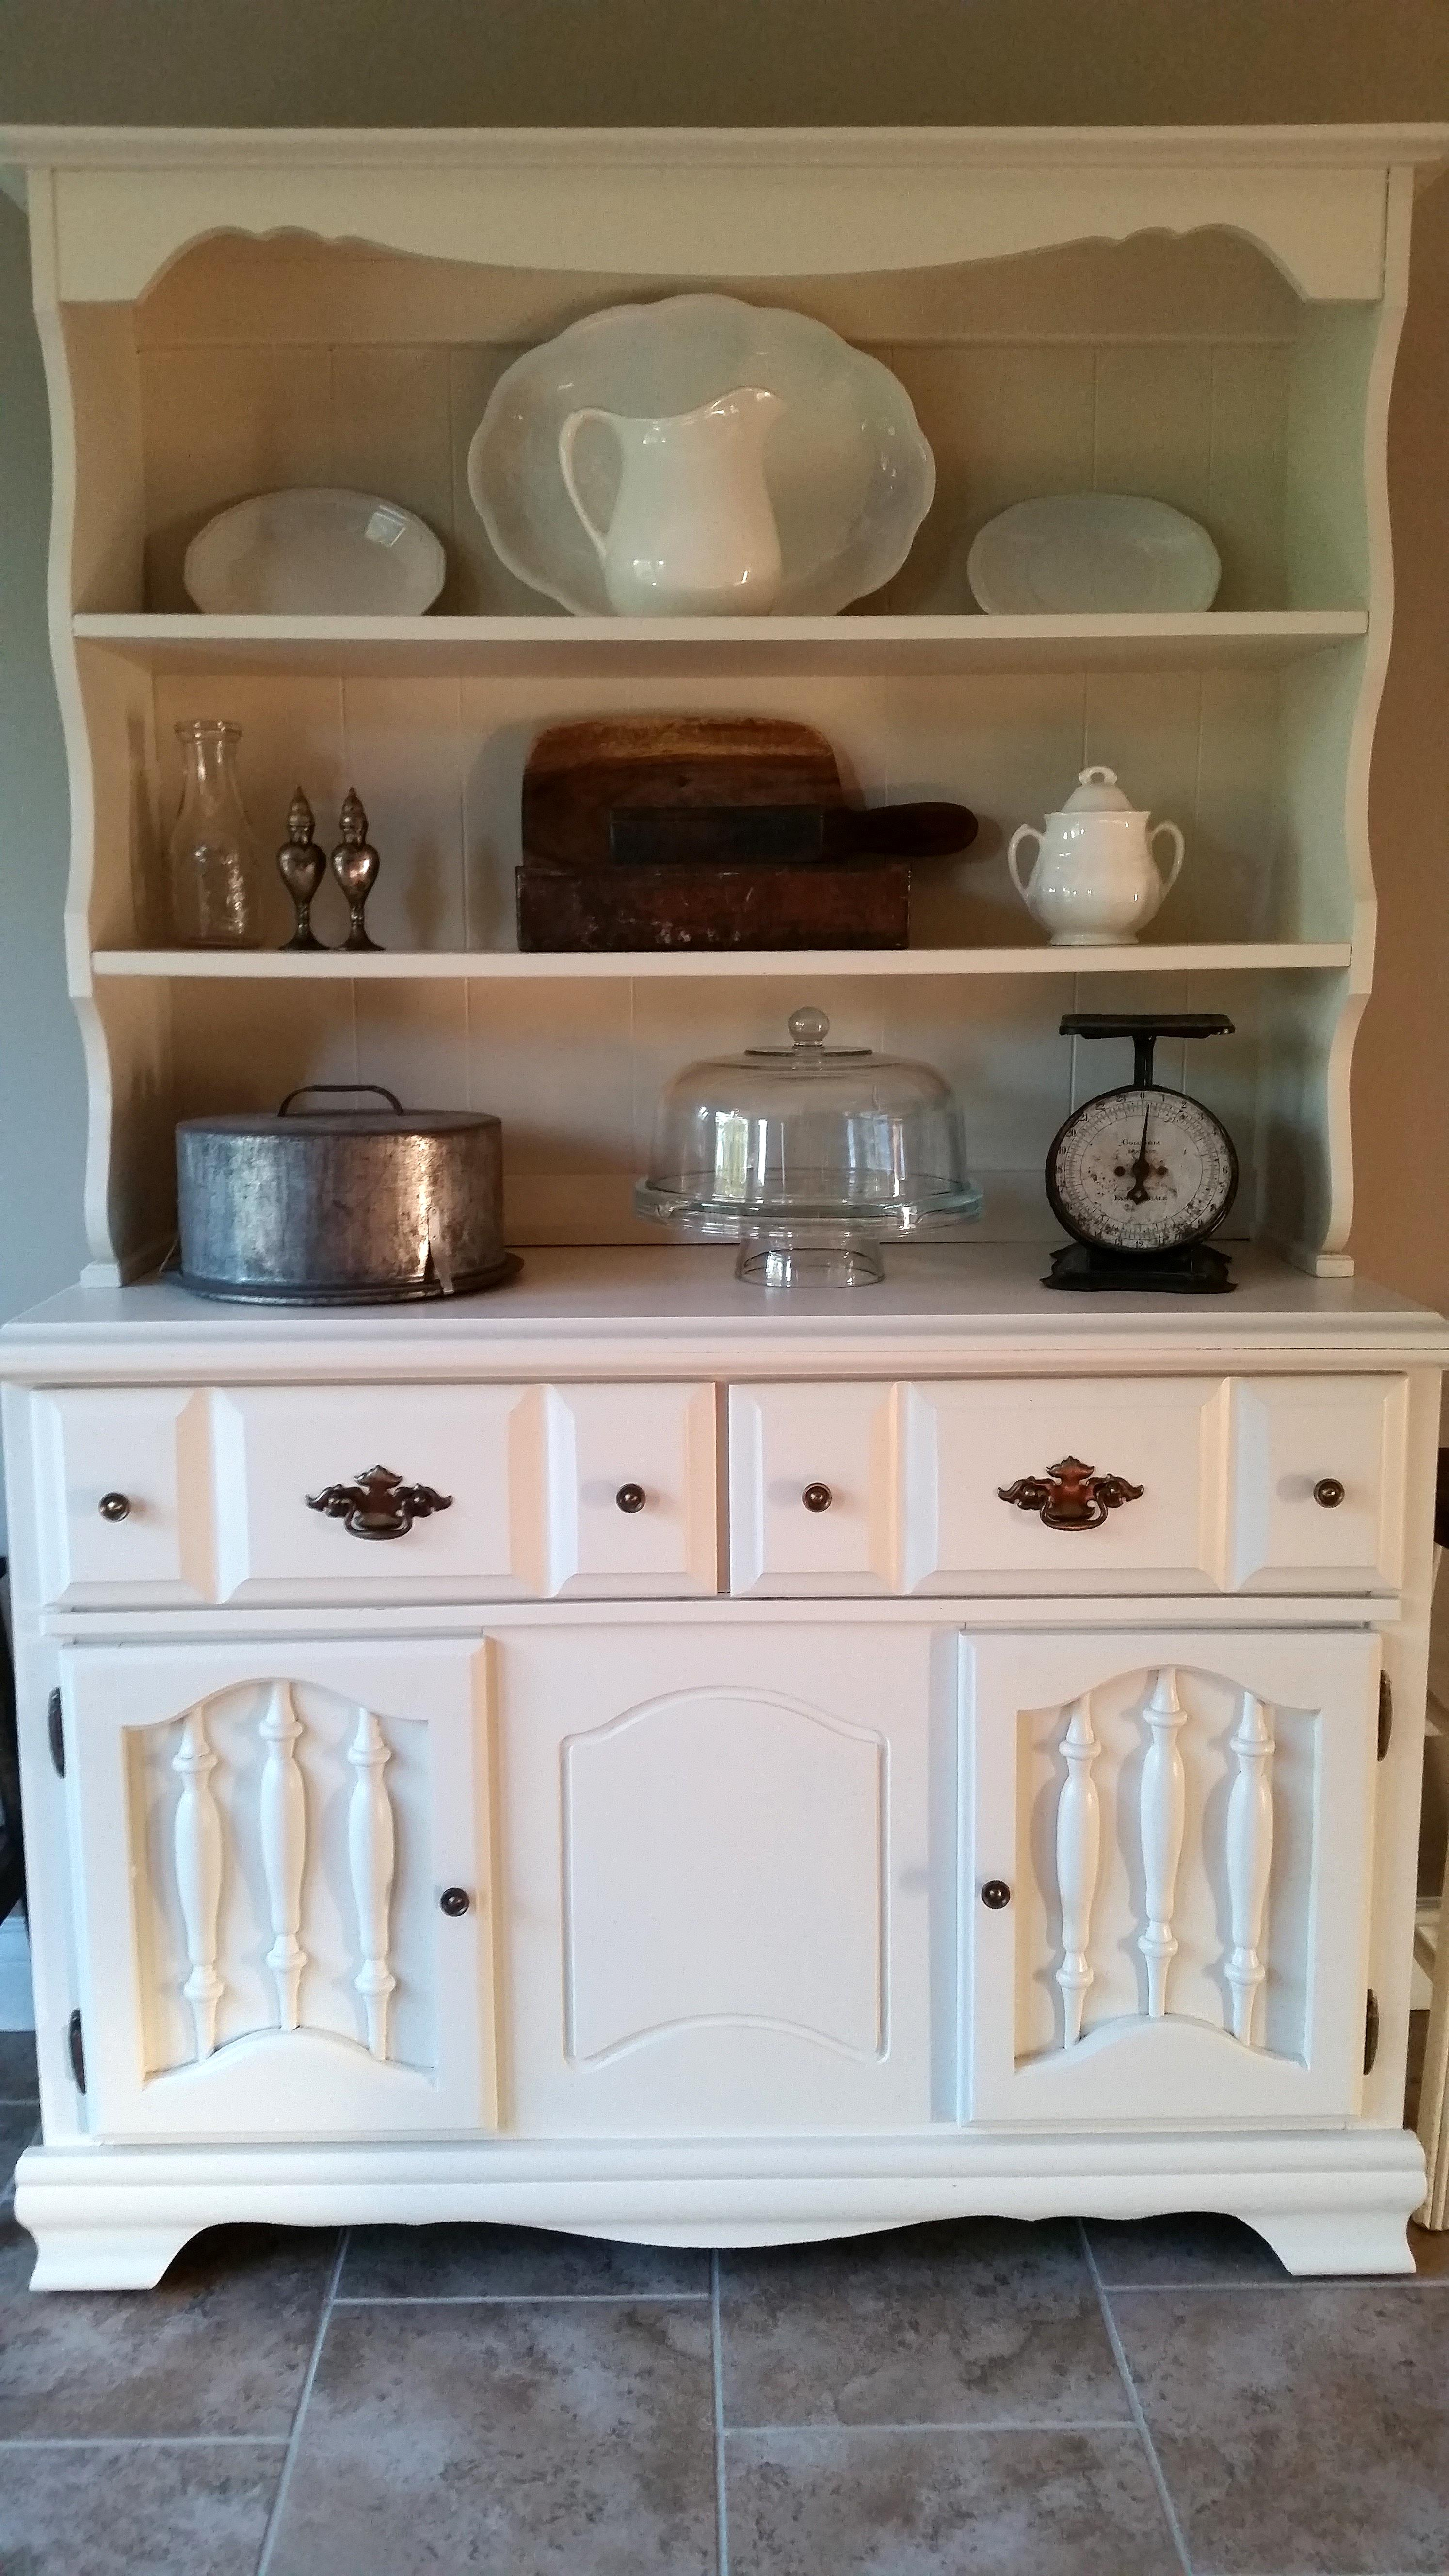 doors maple artistic hutch kitchen in awesome com maidanchronicles cabinets no pickled